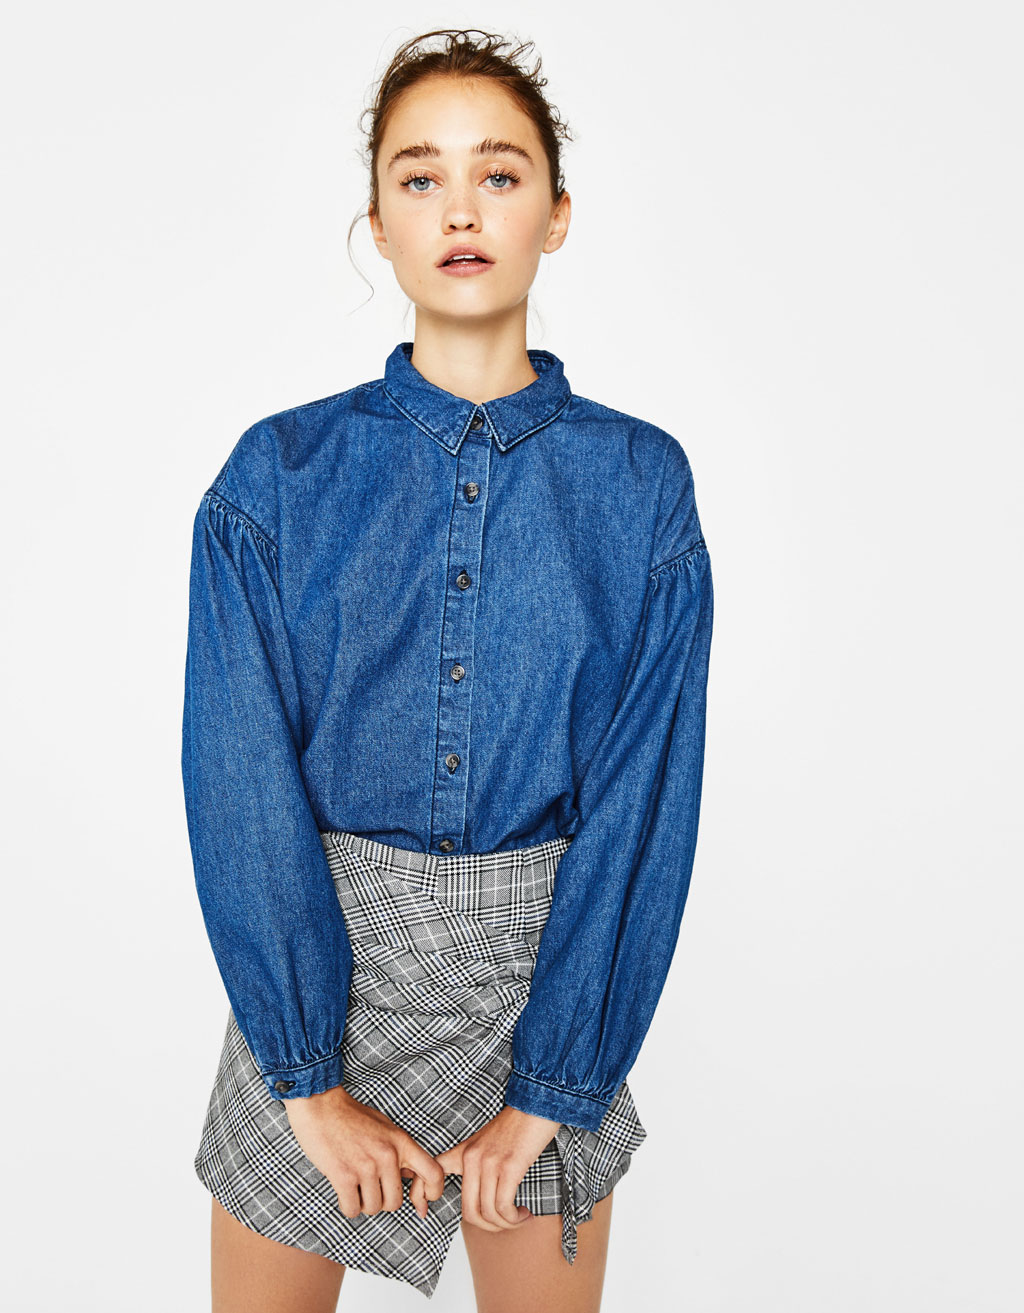 Denim shirt with puffy sleeves